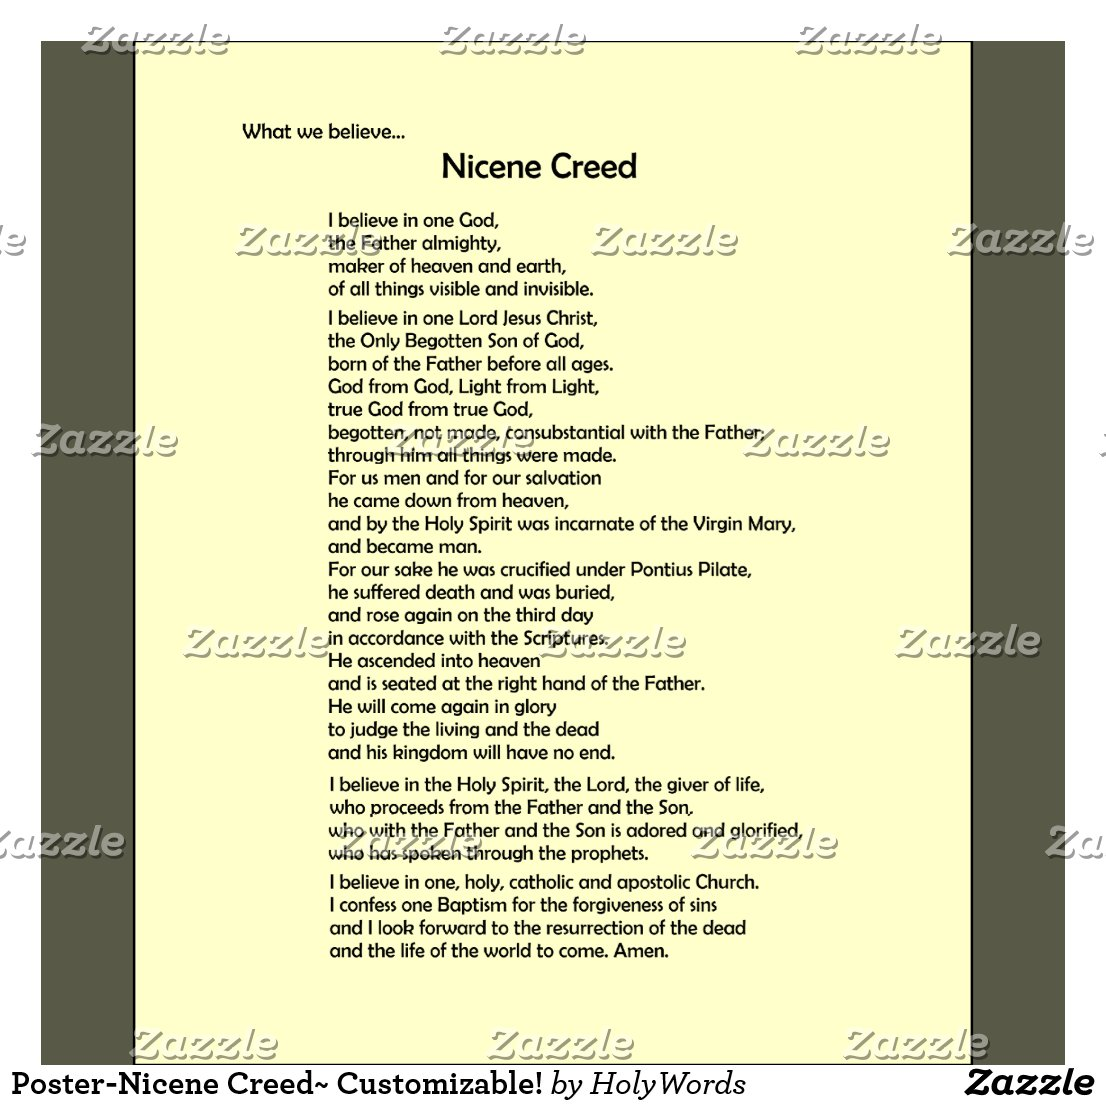 nicene creed Nomenclature there are several designations for the two forms of the nicene creed, some with overlapping meanings: nicene creed can refer to the original version.